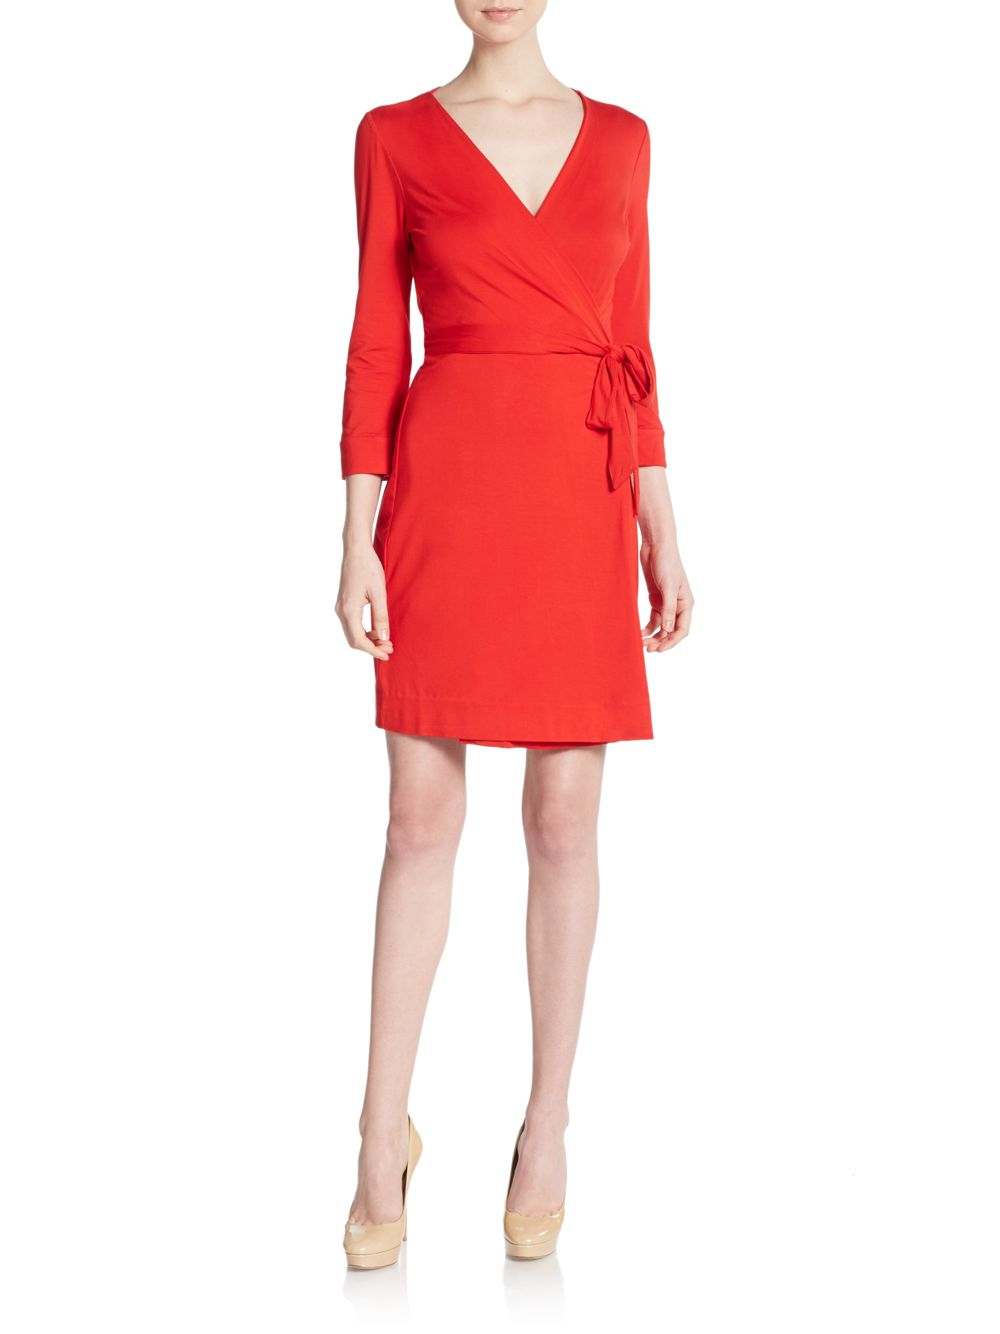 Diane von furstenberg new julian wrap dress in red poppy for Diane von furstenberg clothes